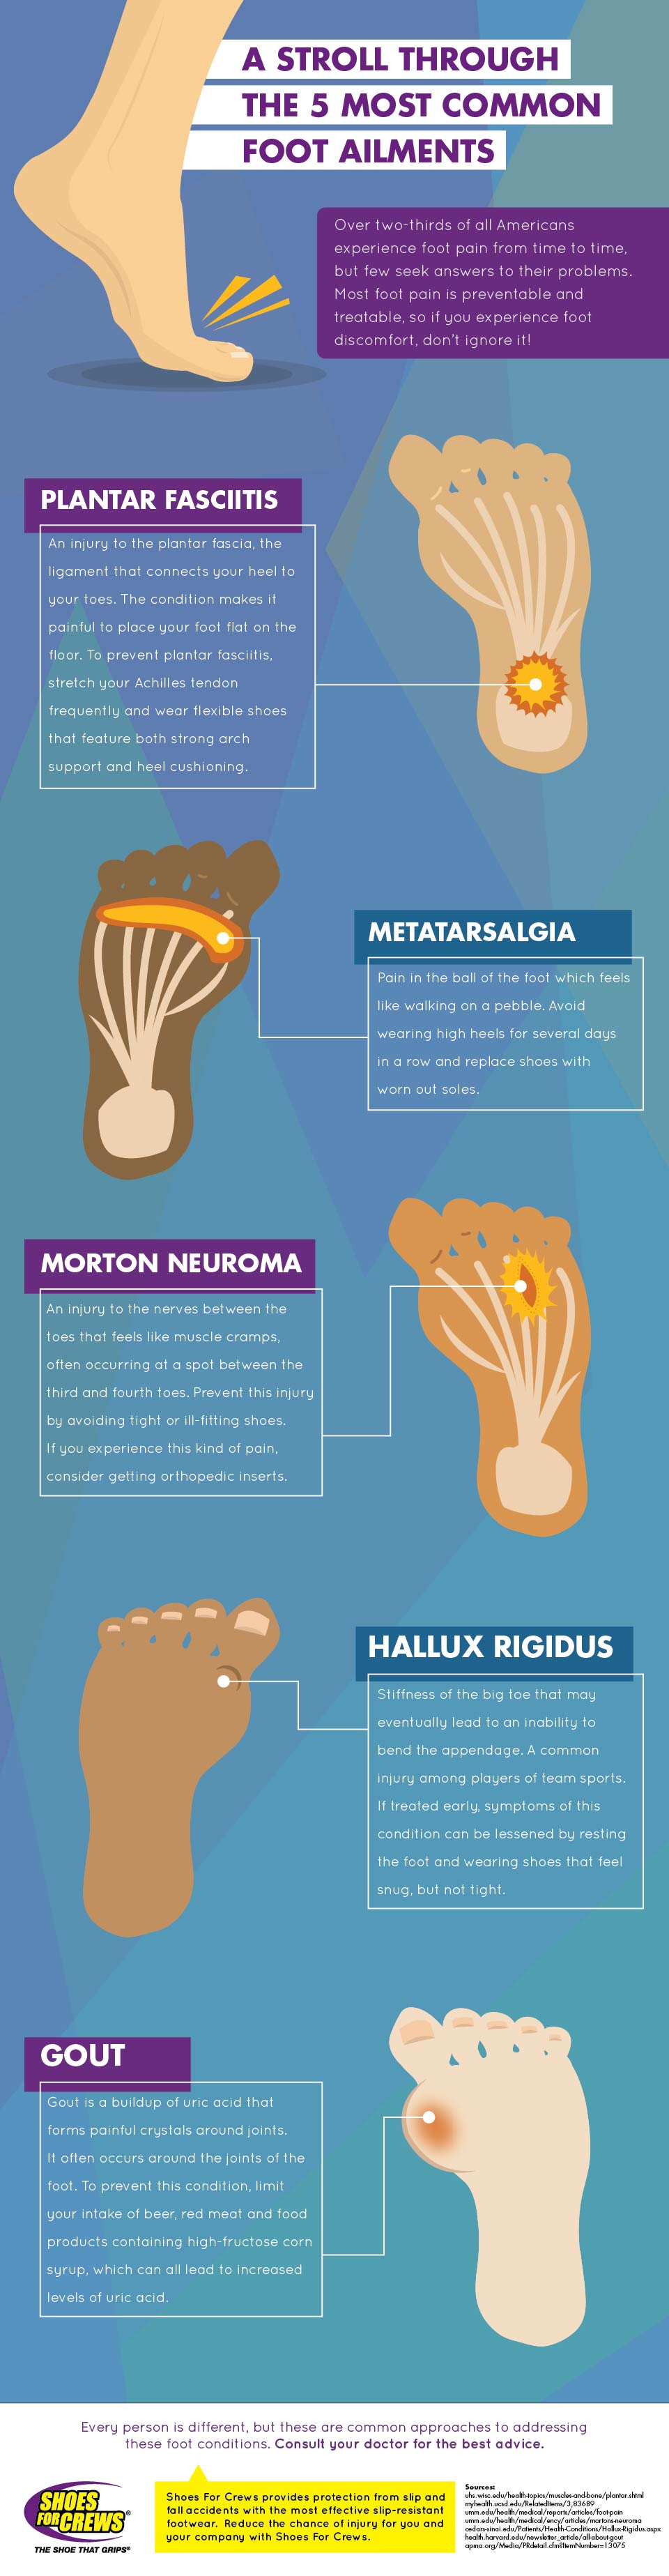 A stroll through the 5 most common foot ailments.